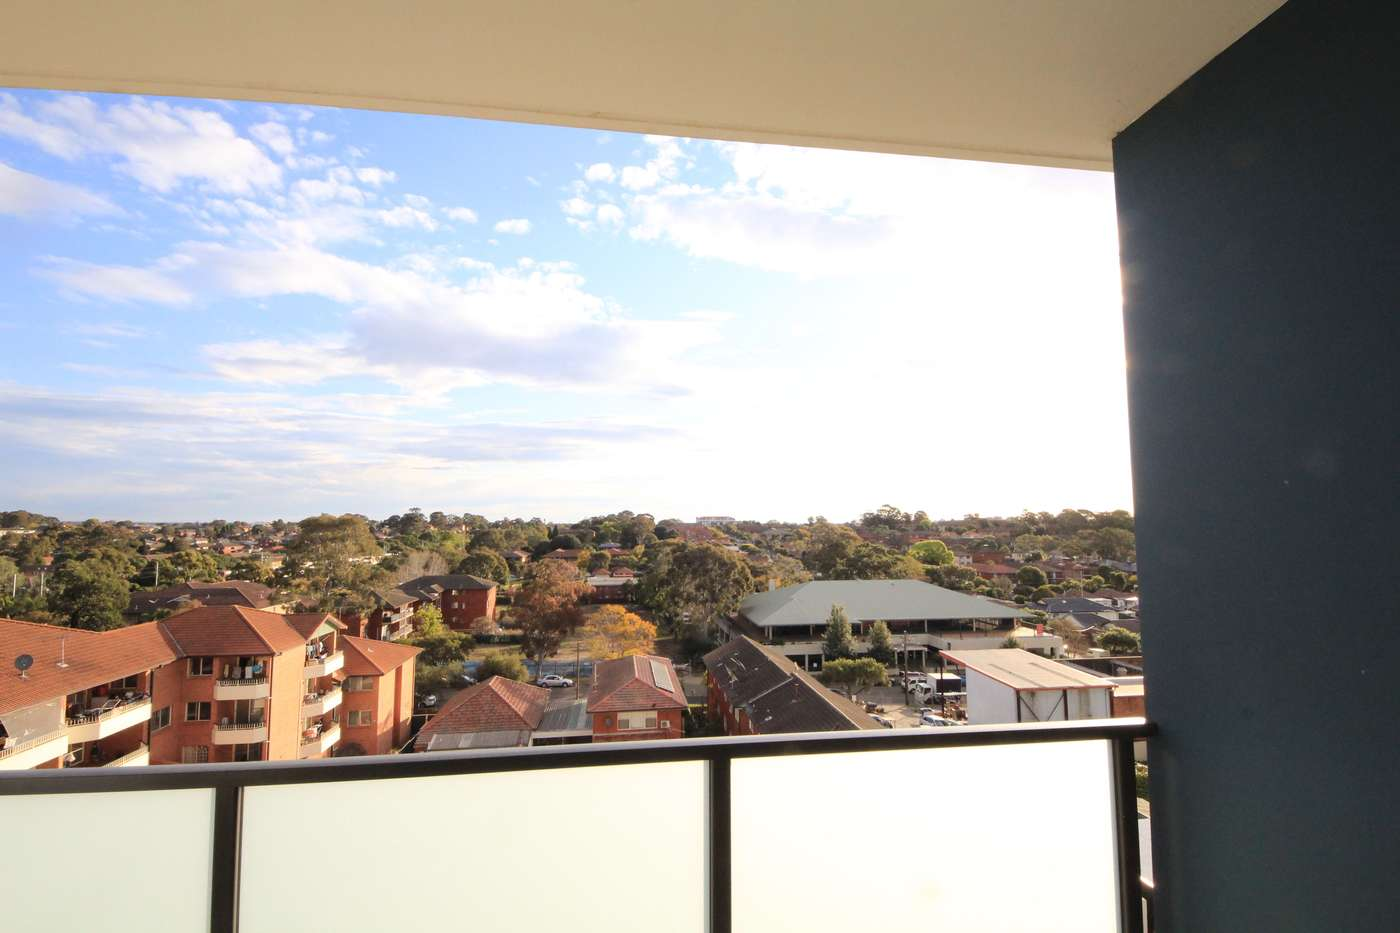 Main view of Homely unit listing, 67/6 Haldon Street, Lakemba, NSW 2195